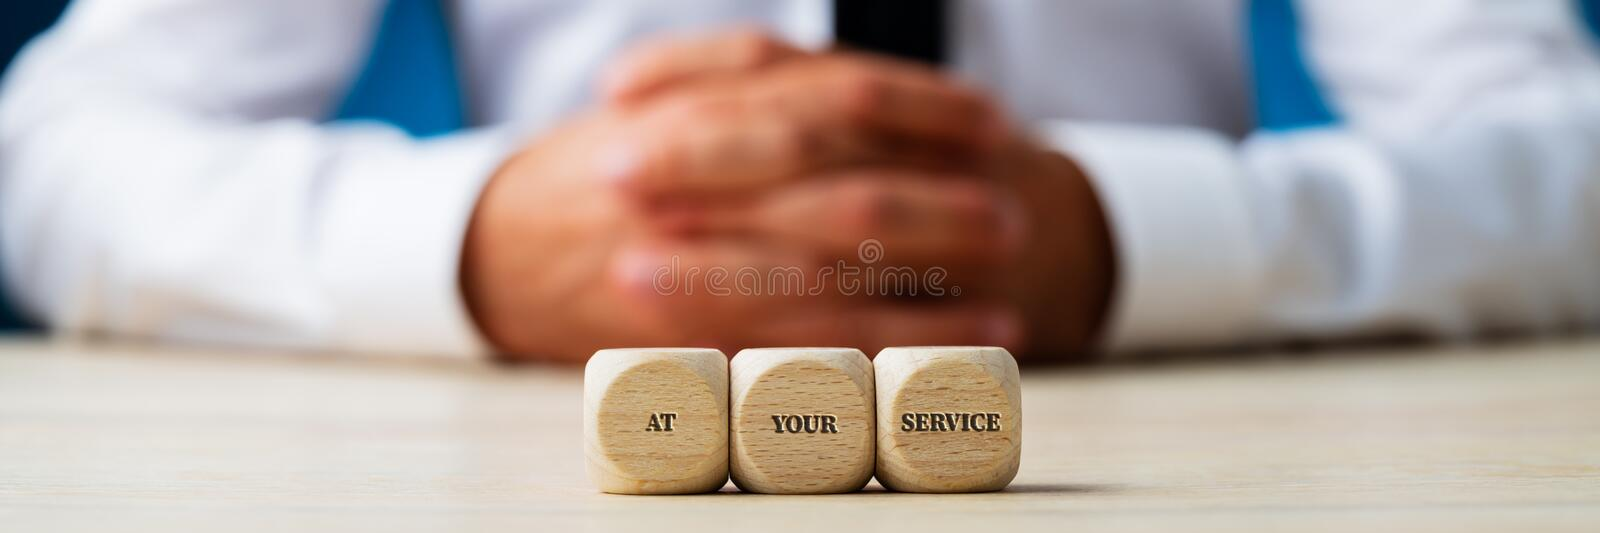 At your service sign royalty free stock photo